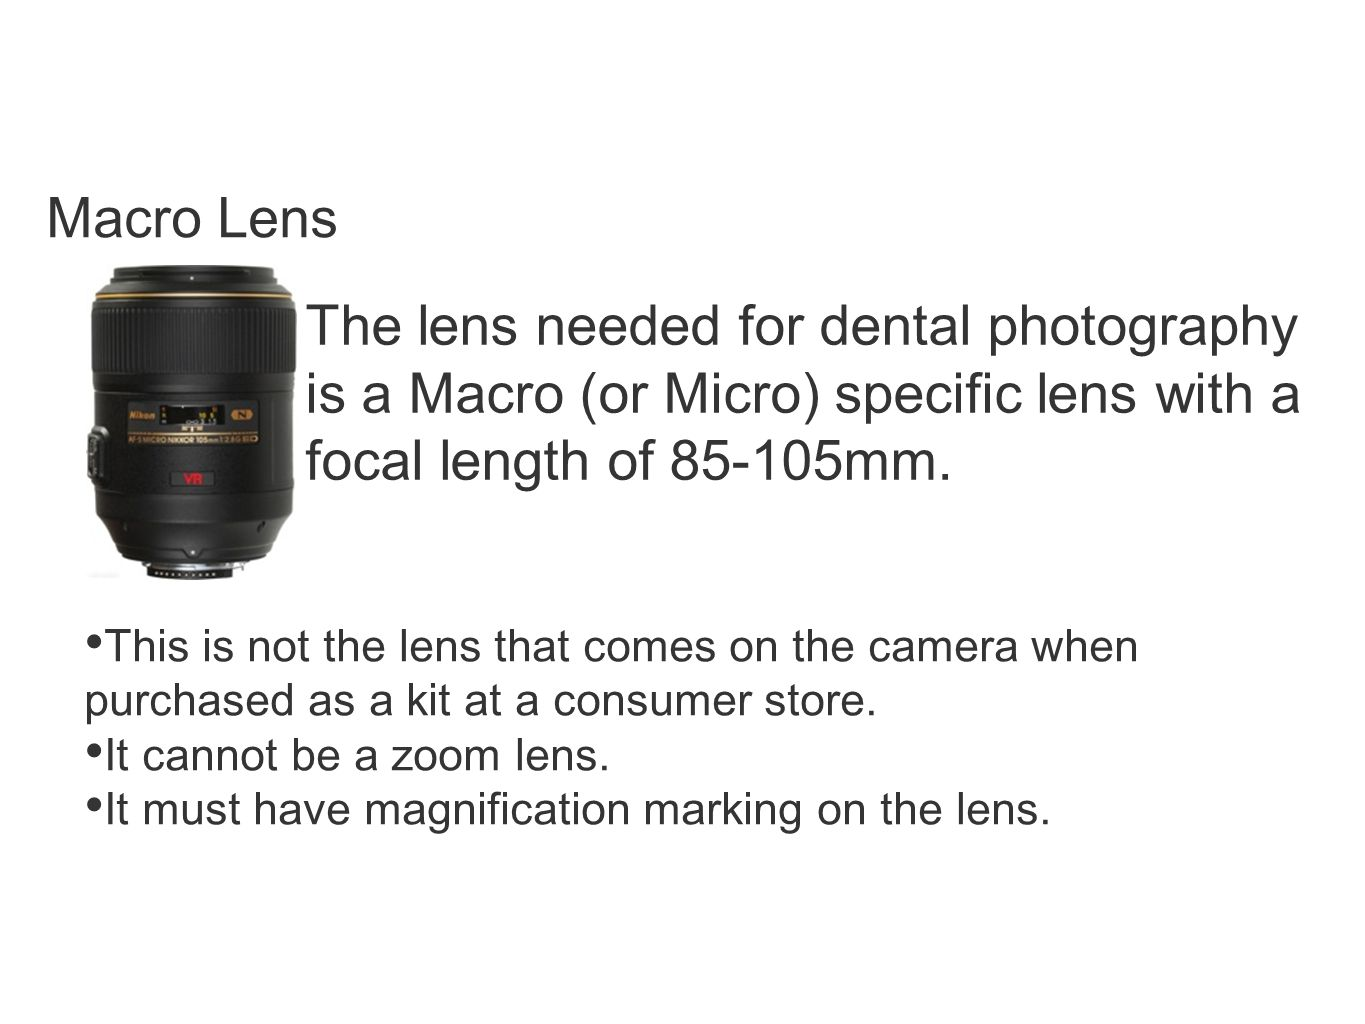 Macro Lens The lens needed for dental photography is a Macro (or Micro) specific lens with a focal length of 85-105mm.